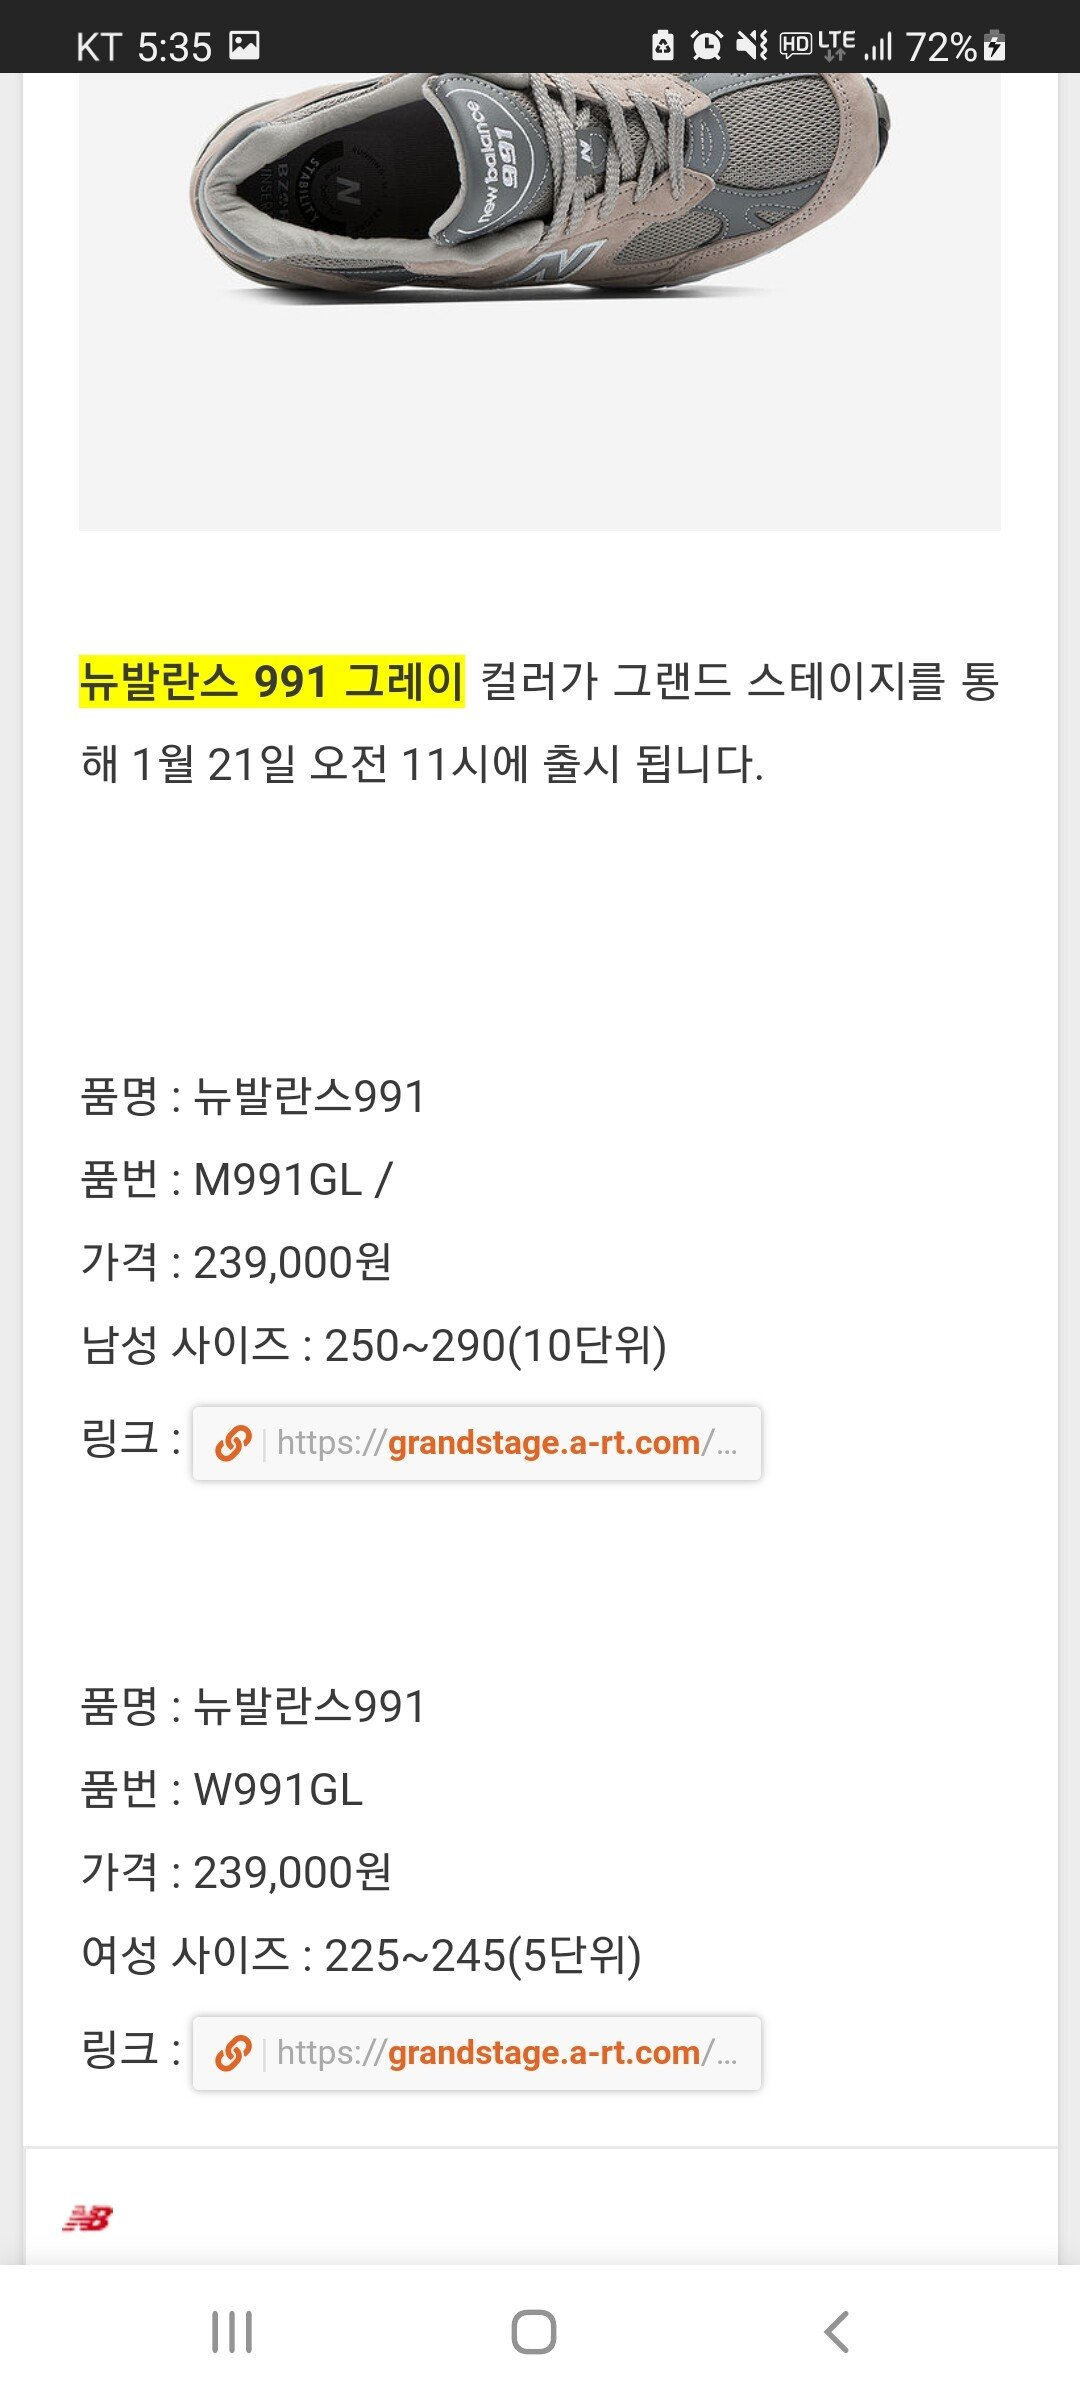 Screenshot_20210120-173508_Samsung Internet.jpg 뉴발991 그레이 발매 1월21일